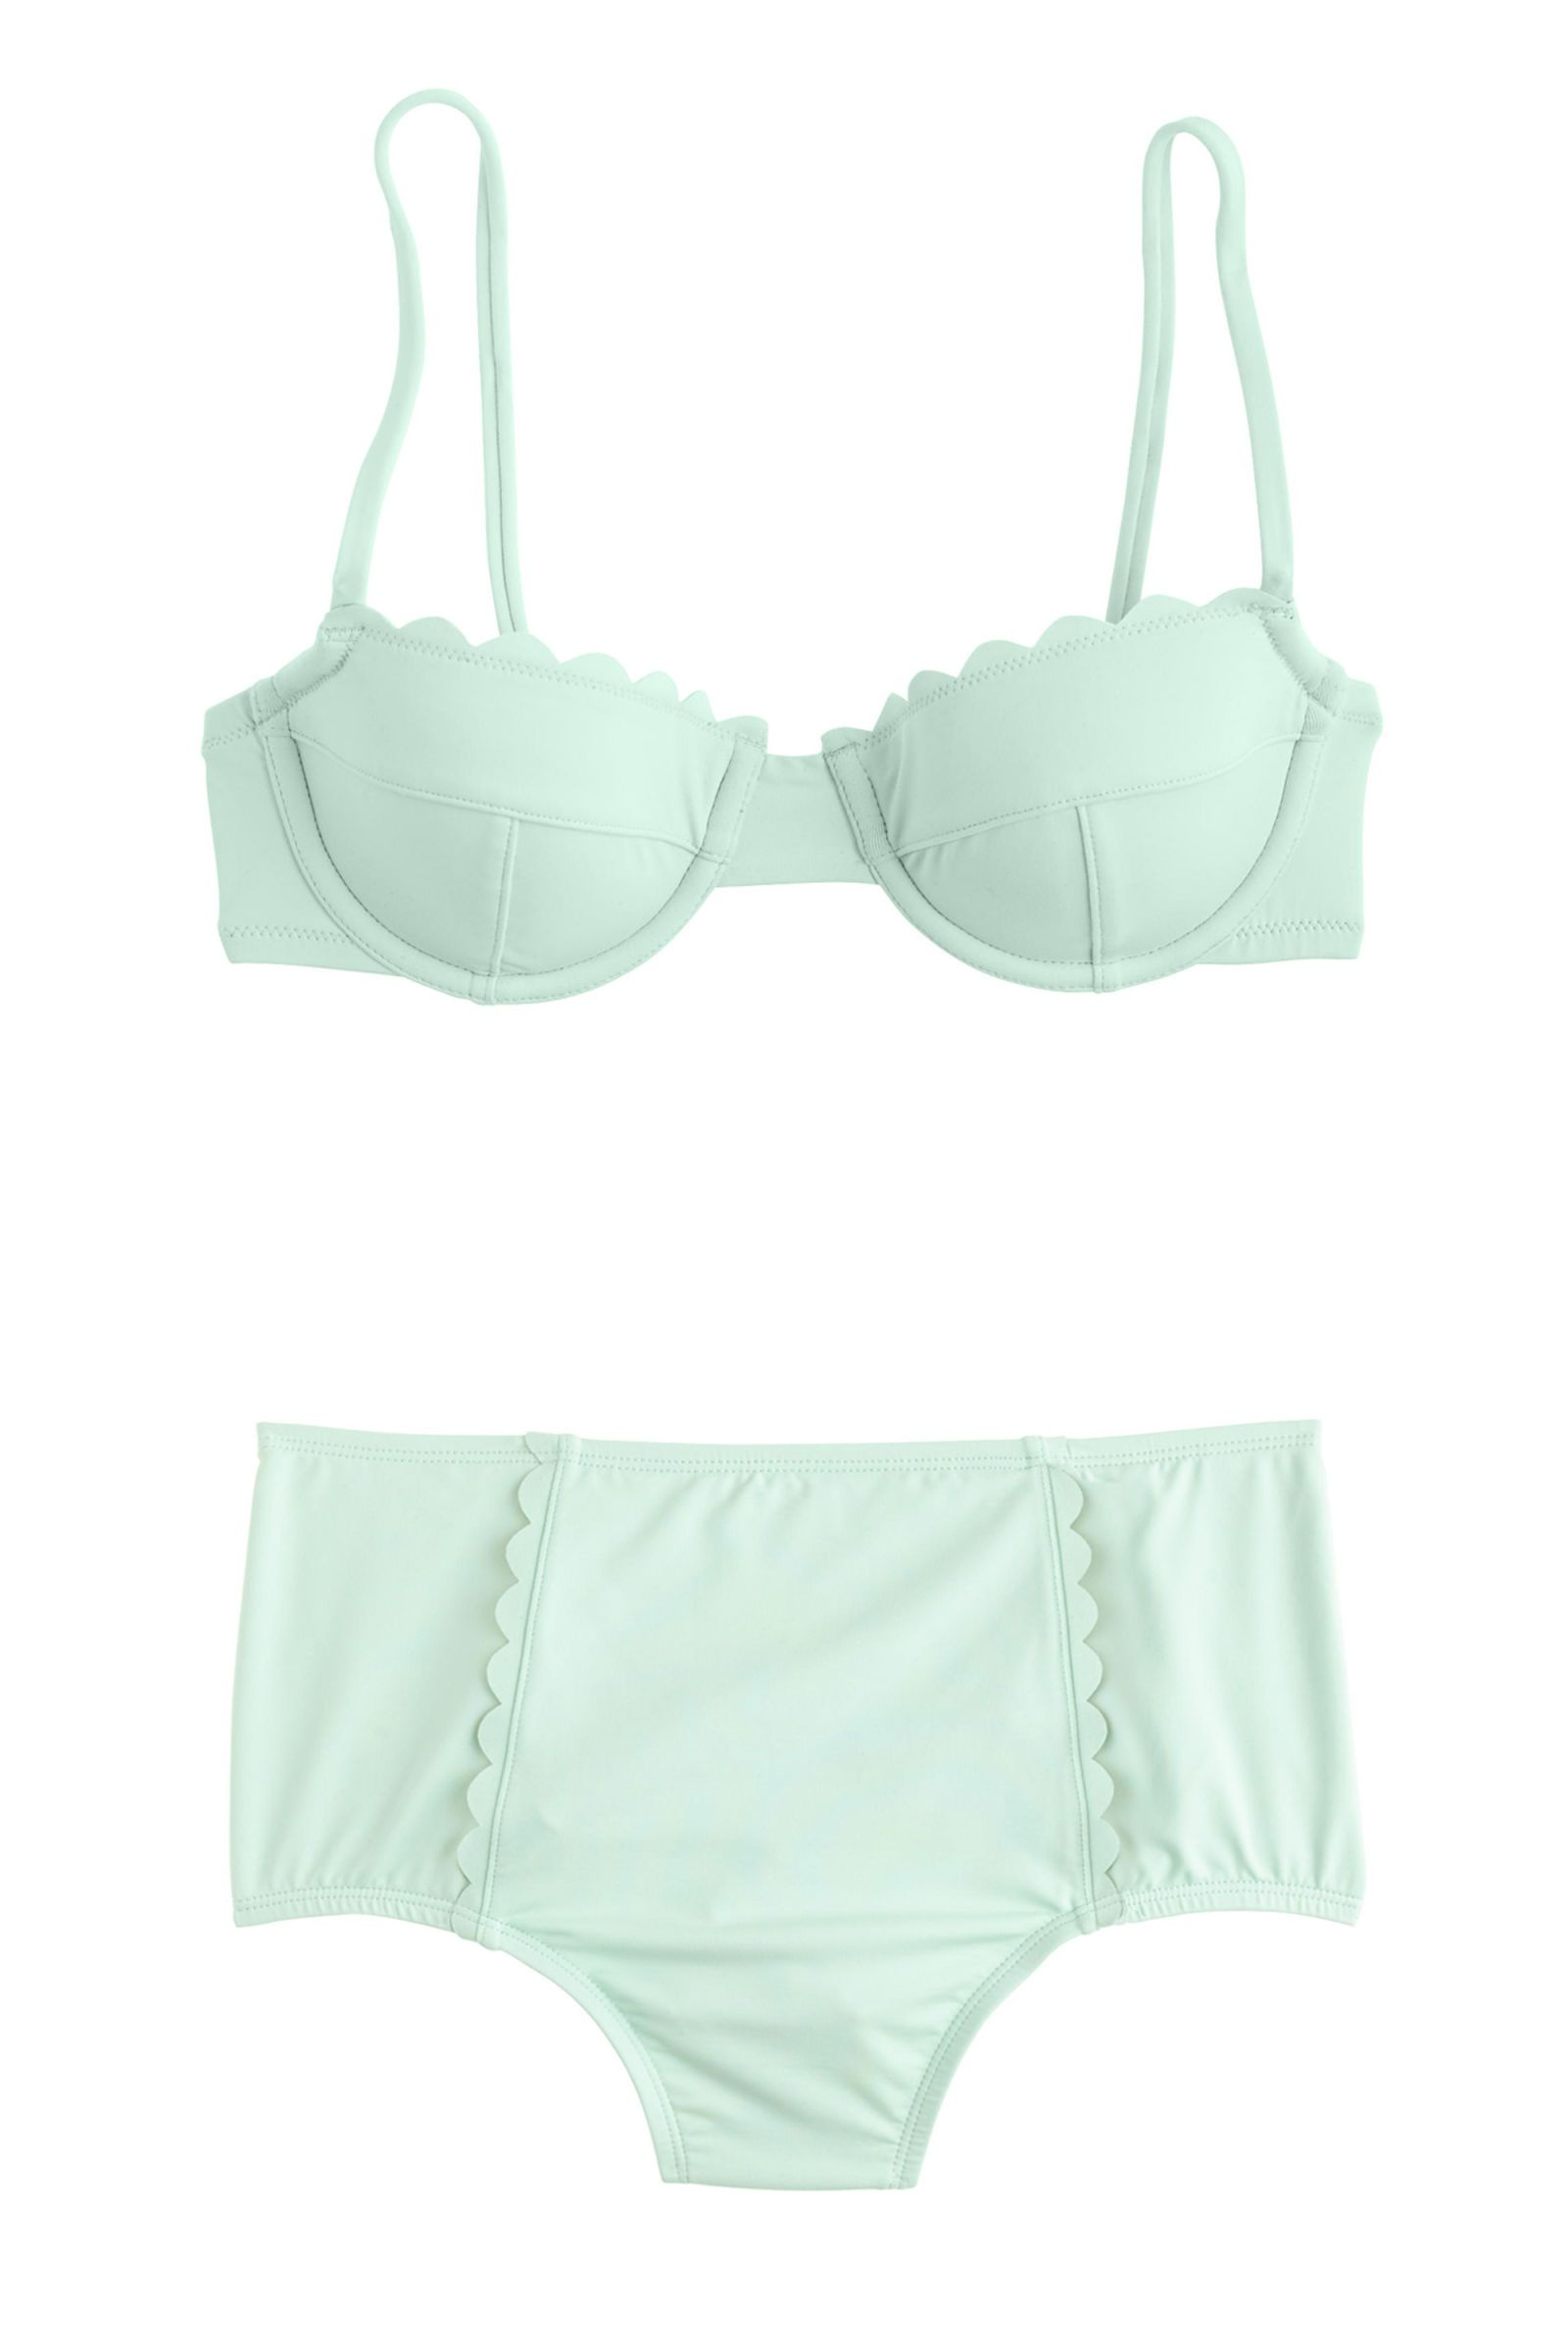 977406fb1f ... Because You're Probably Ready for a Vacation. J.Crew Scalloped  Underwire Bikini Top, $78; jcrew.com J.Crew Scalloped High-Waist Bikini  Brief, $68; ...